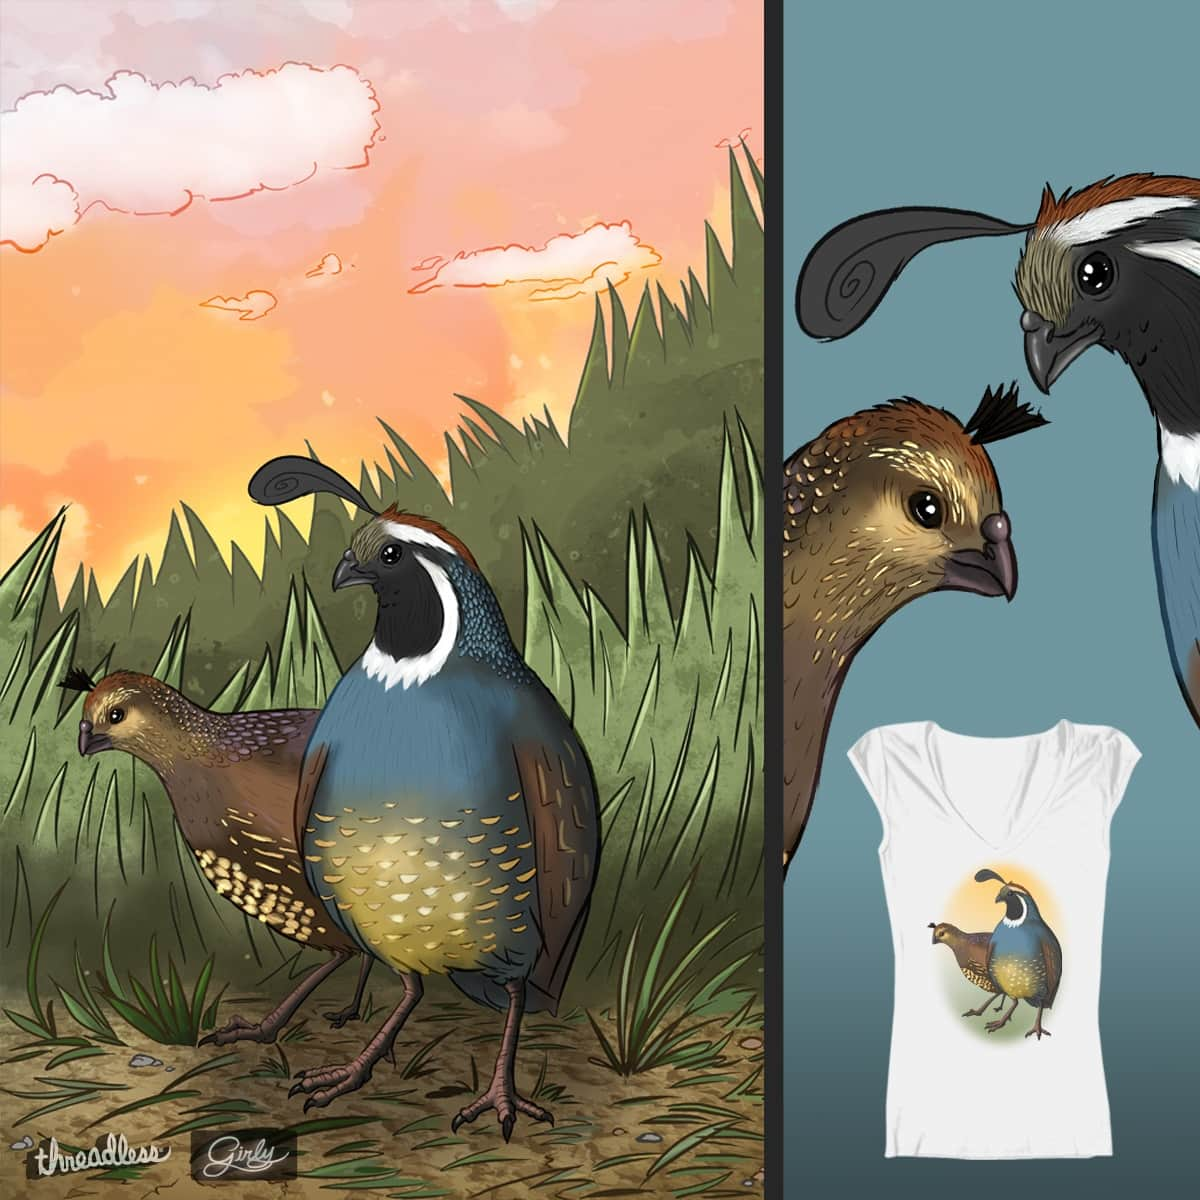 Two Quail by timothy Jones on Threadless